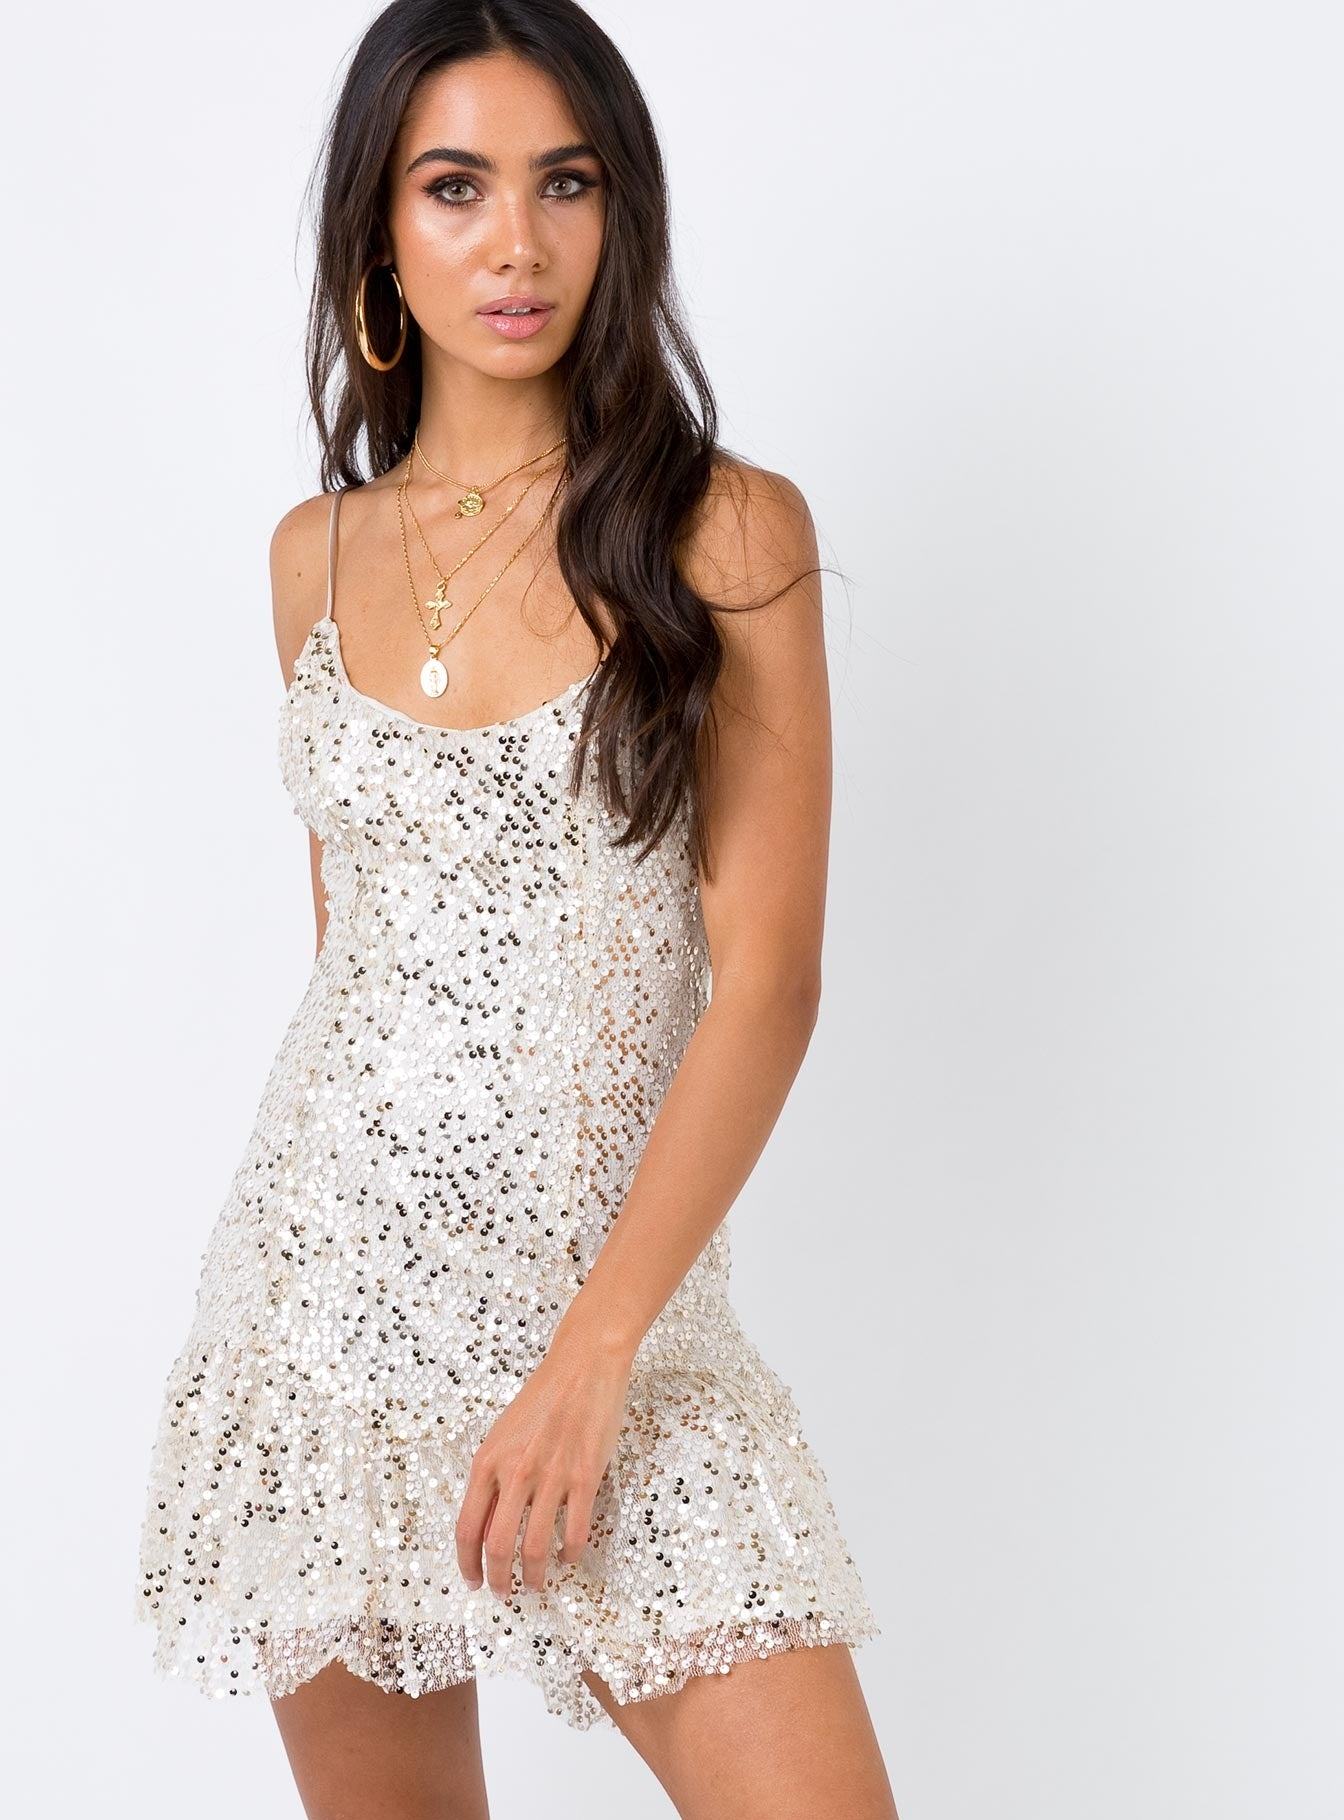 Star Hopper Mini Dress Cream